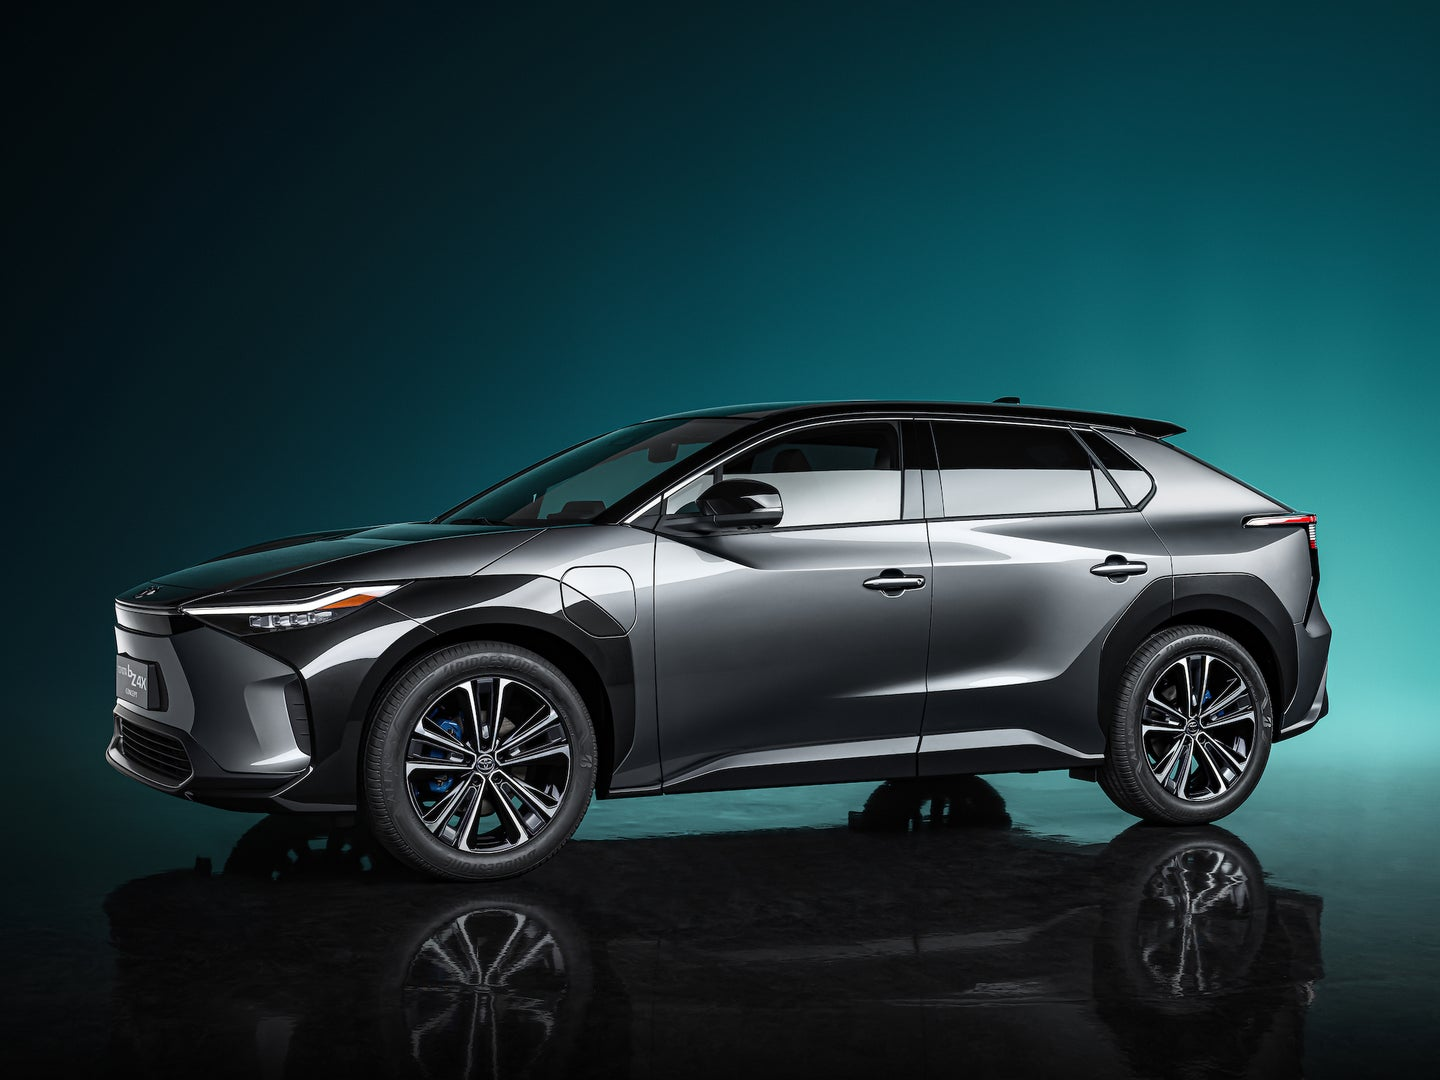 Toyota and Subaru are teaming up for this spacious electric SUV concept